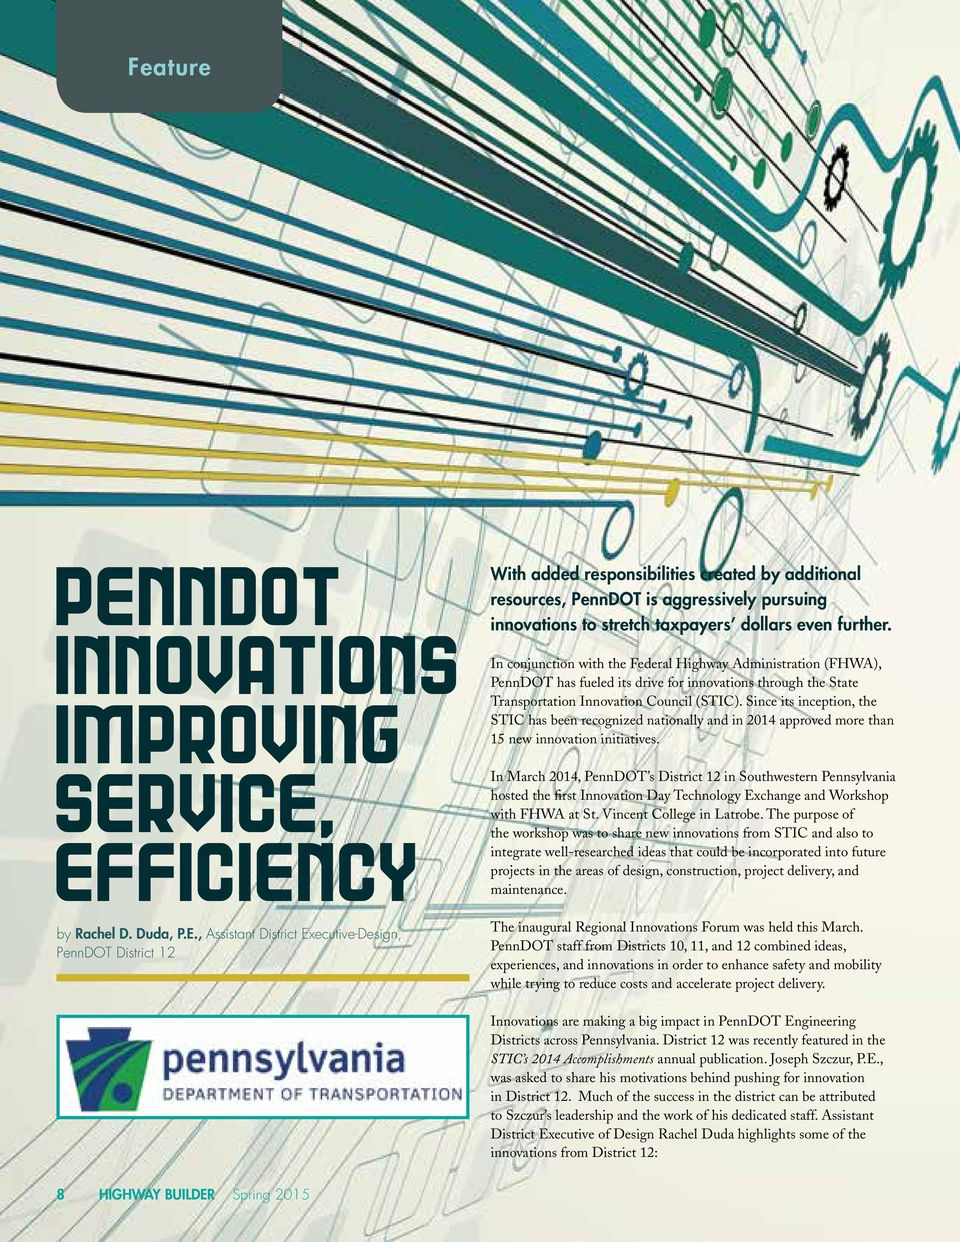 VICE, EFFICIENCY by Rachel D. Duda, P.E., Assistant District Executive-Design, PennDOT District 12 With added responsibilities created by additional resources, PennDOT is aggressively pursuing